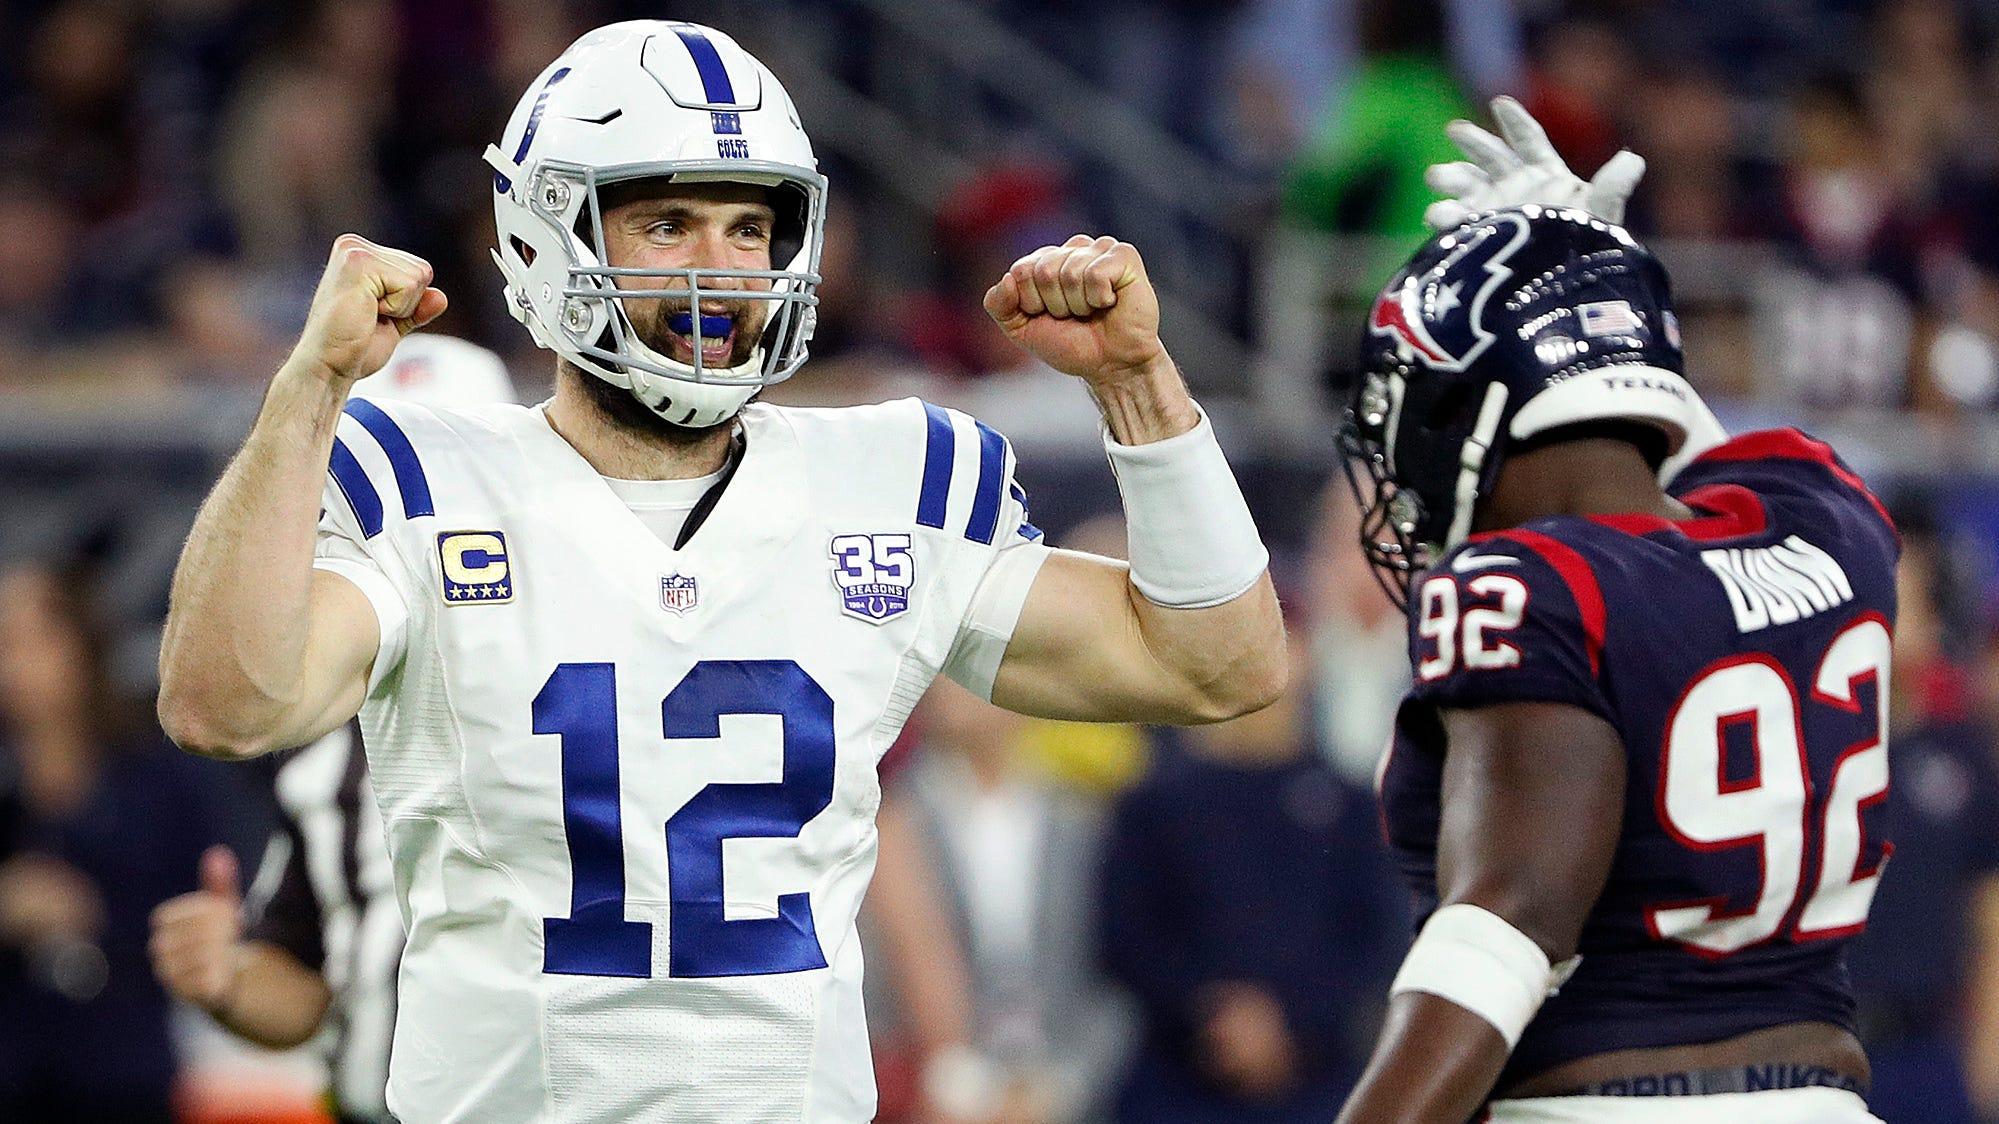 Indianapolis Colts quarterback Andrew Luck (12) begins to celebrate in the fourth quarter of their AFC Wild Card playoff game at NRG Stadium in Houston, TX., on Saturday, Jan. 5, 2019.